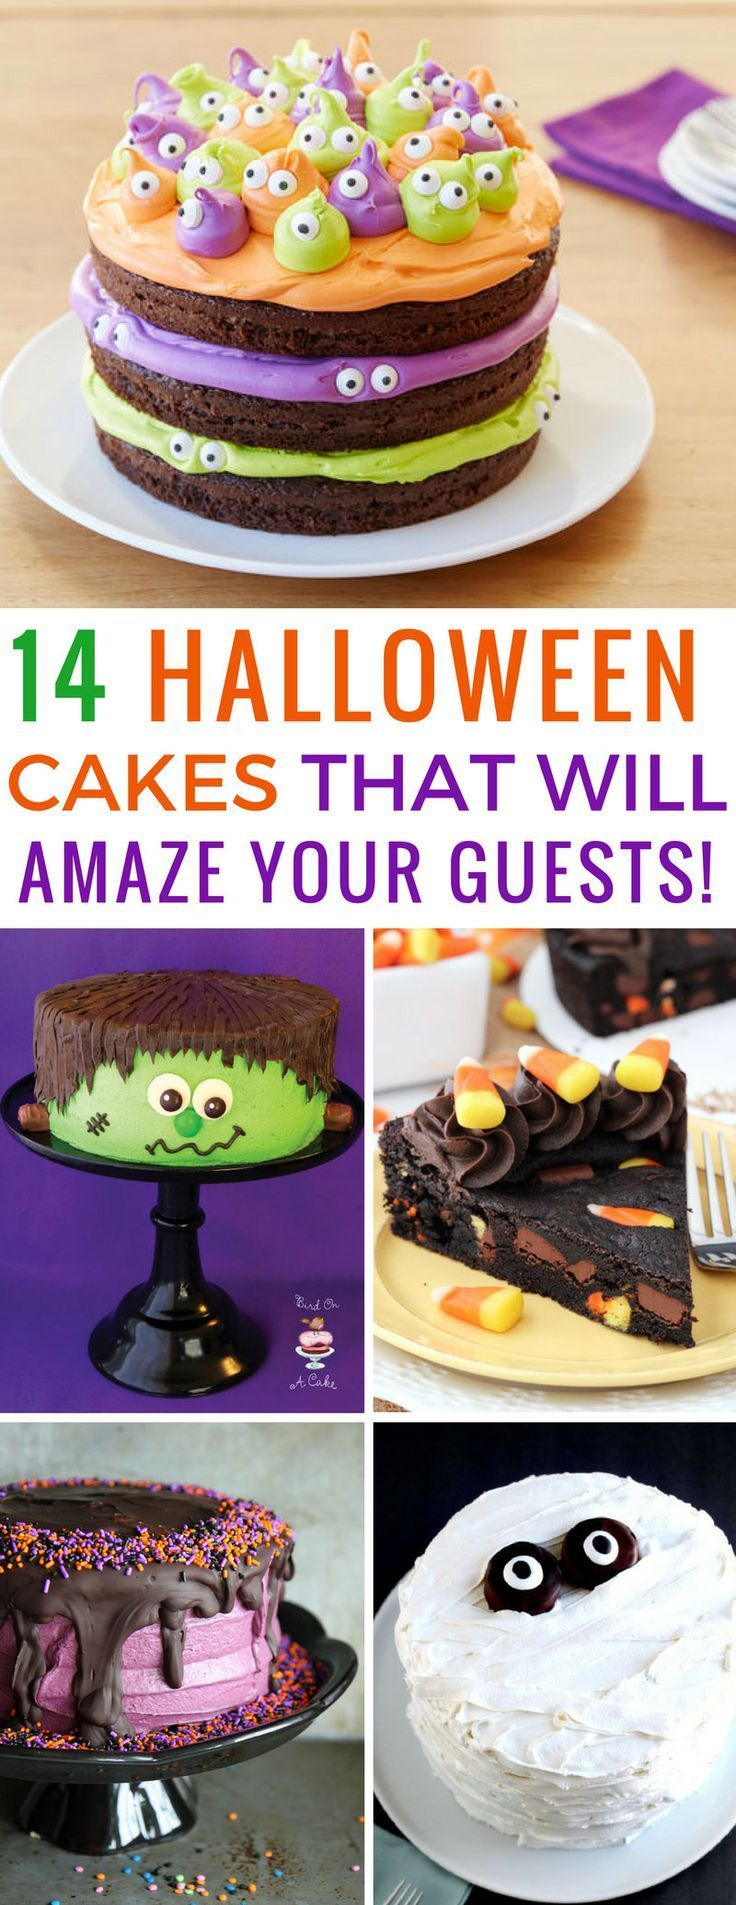 14 Easy Halloween Cake Recipes for Kids - Perfect for Parties!